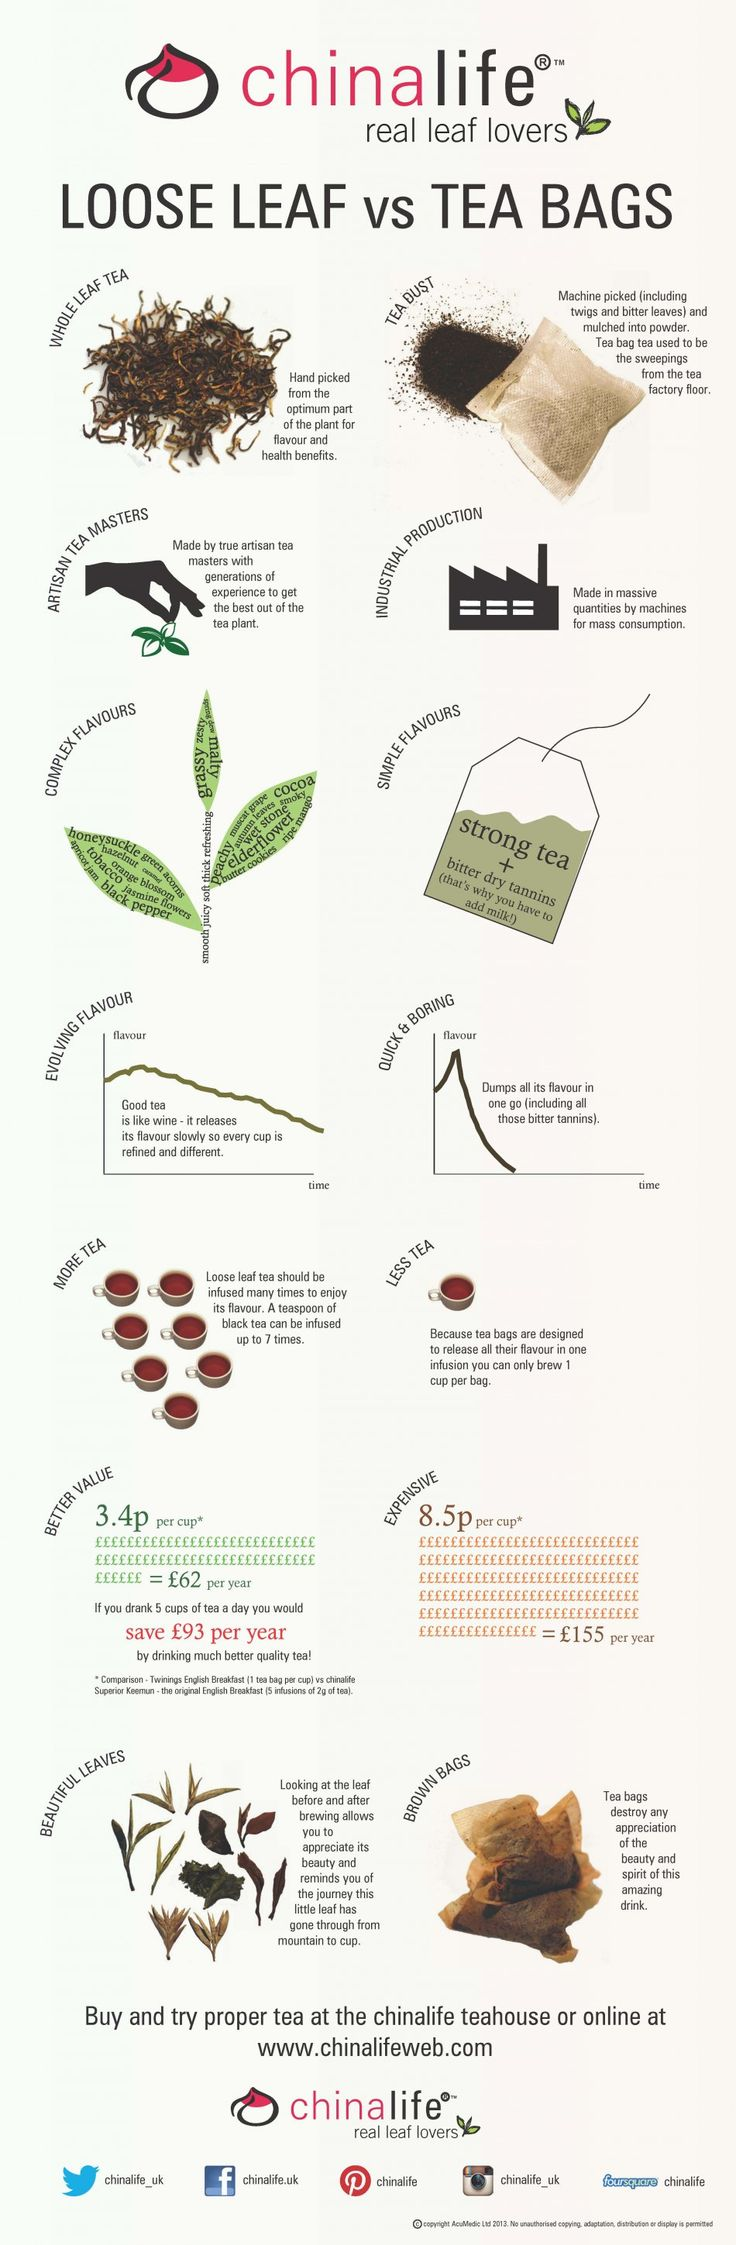 Loose Leaf vs Tea Bags Infographic from chinalifeweb.com